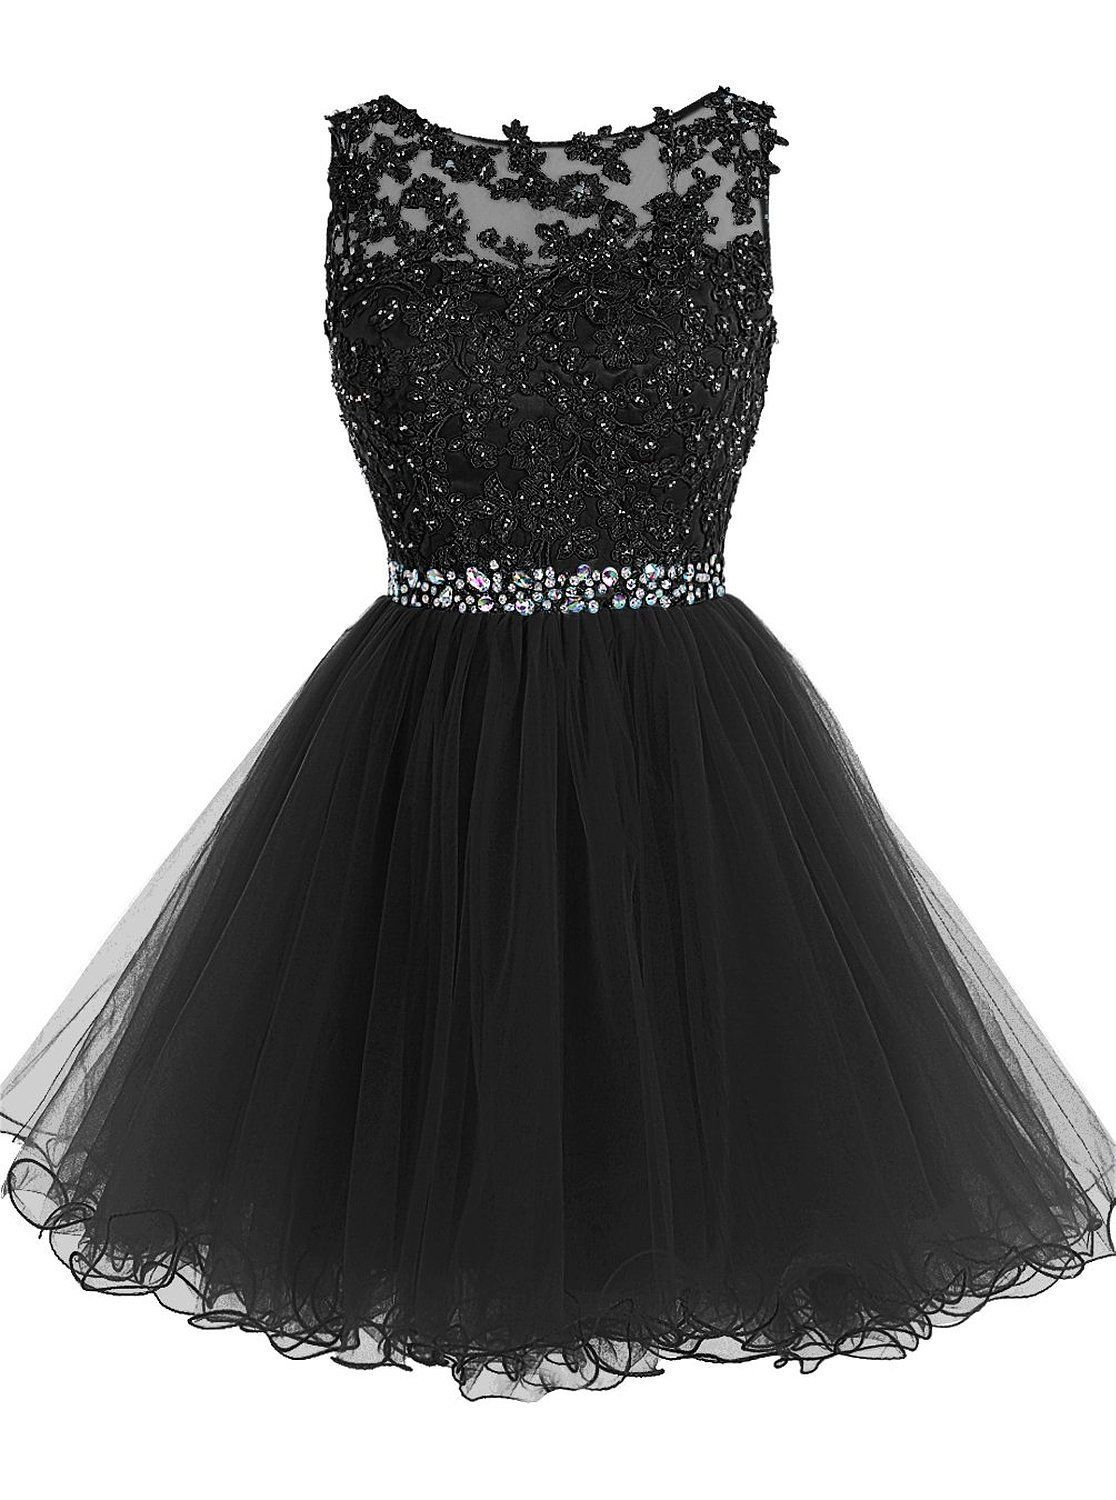 Sexy Black Short Prom Dress, Lace Prom Dress, Prom Party Gown, Short Beaded Prom Dress, Tulle Applique Evening Dress, Homecoming Dresses